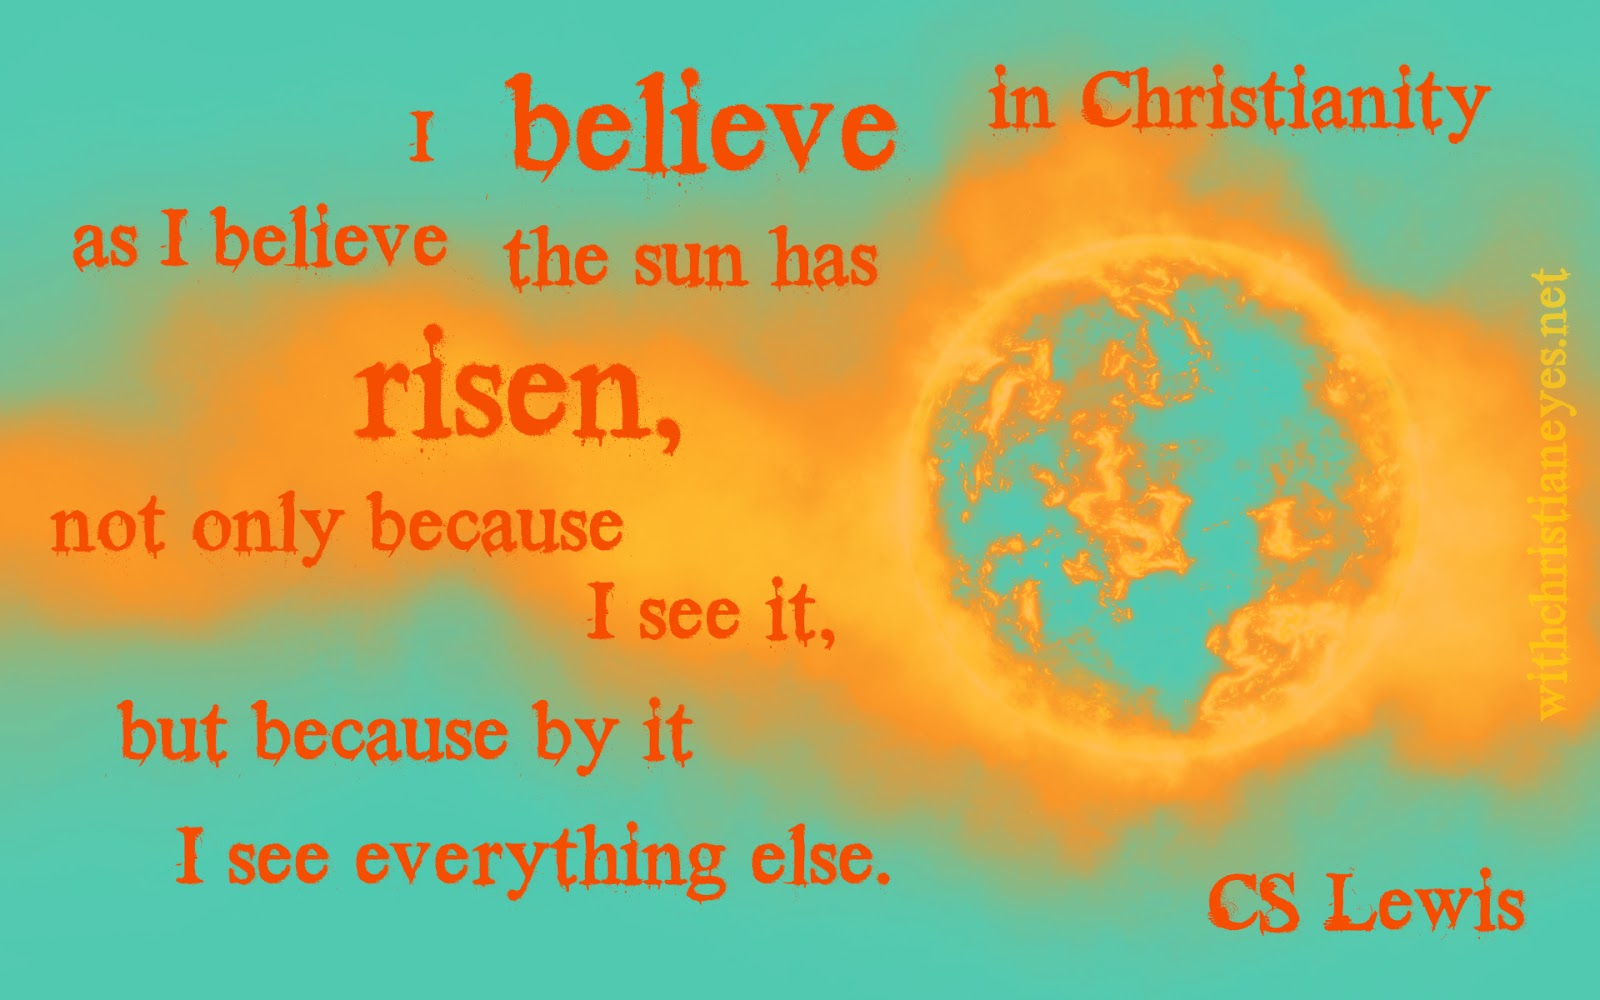 CS Lewis sun quote